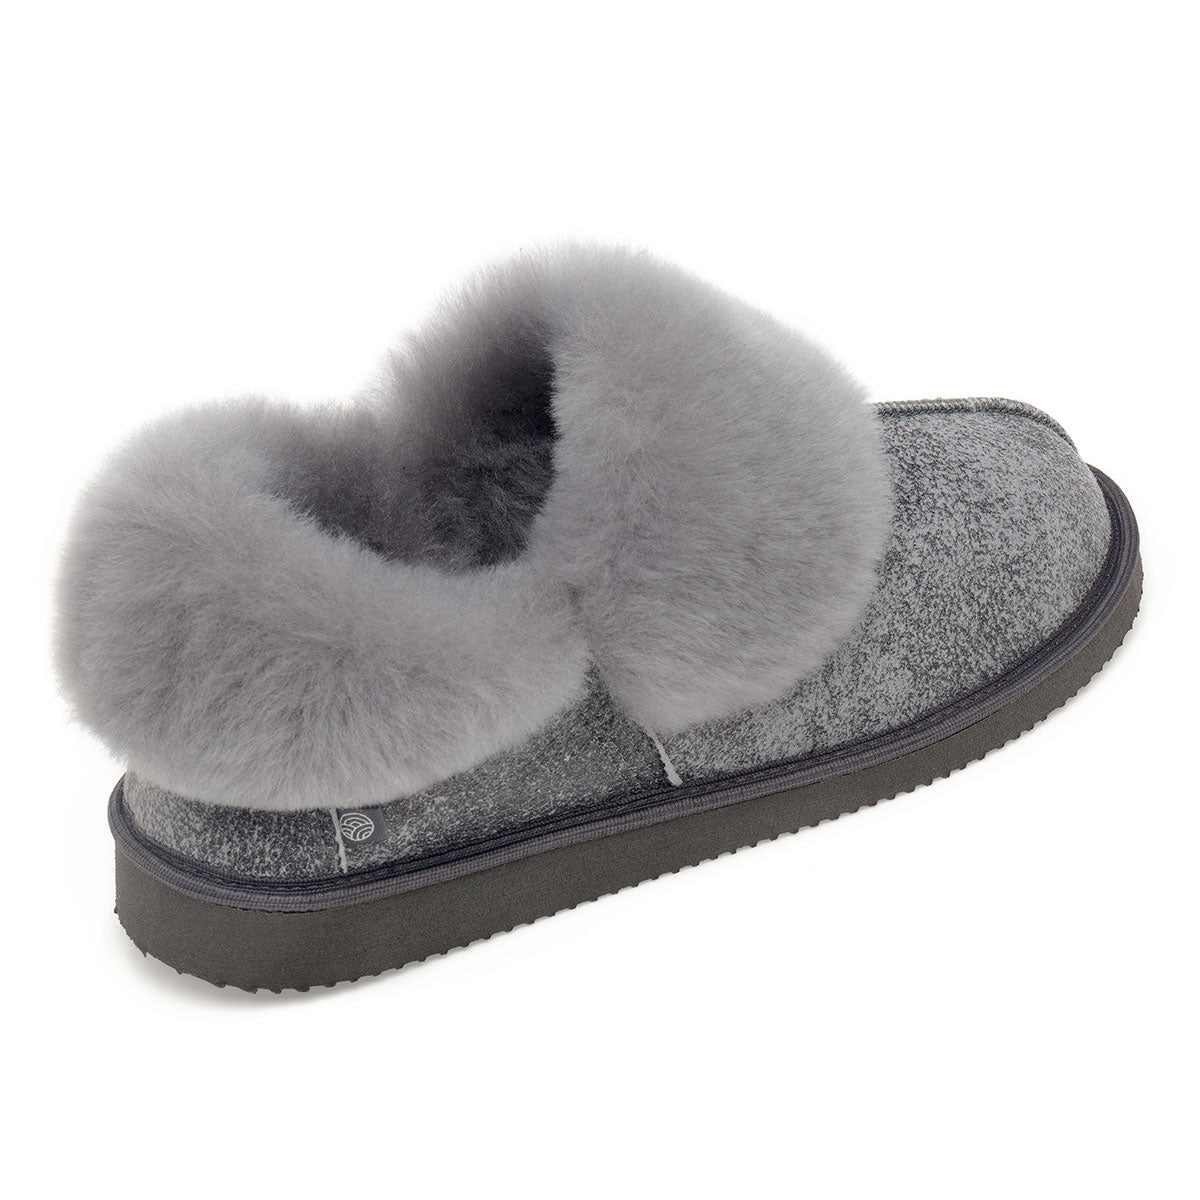 NEW Gael Sheepskin Slippers - Grey Distressed Leather